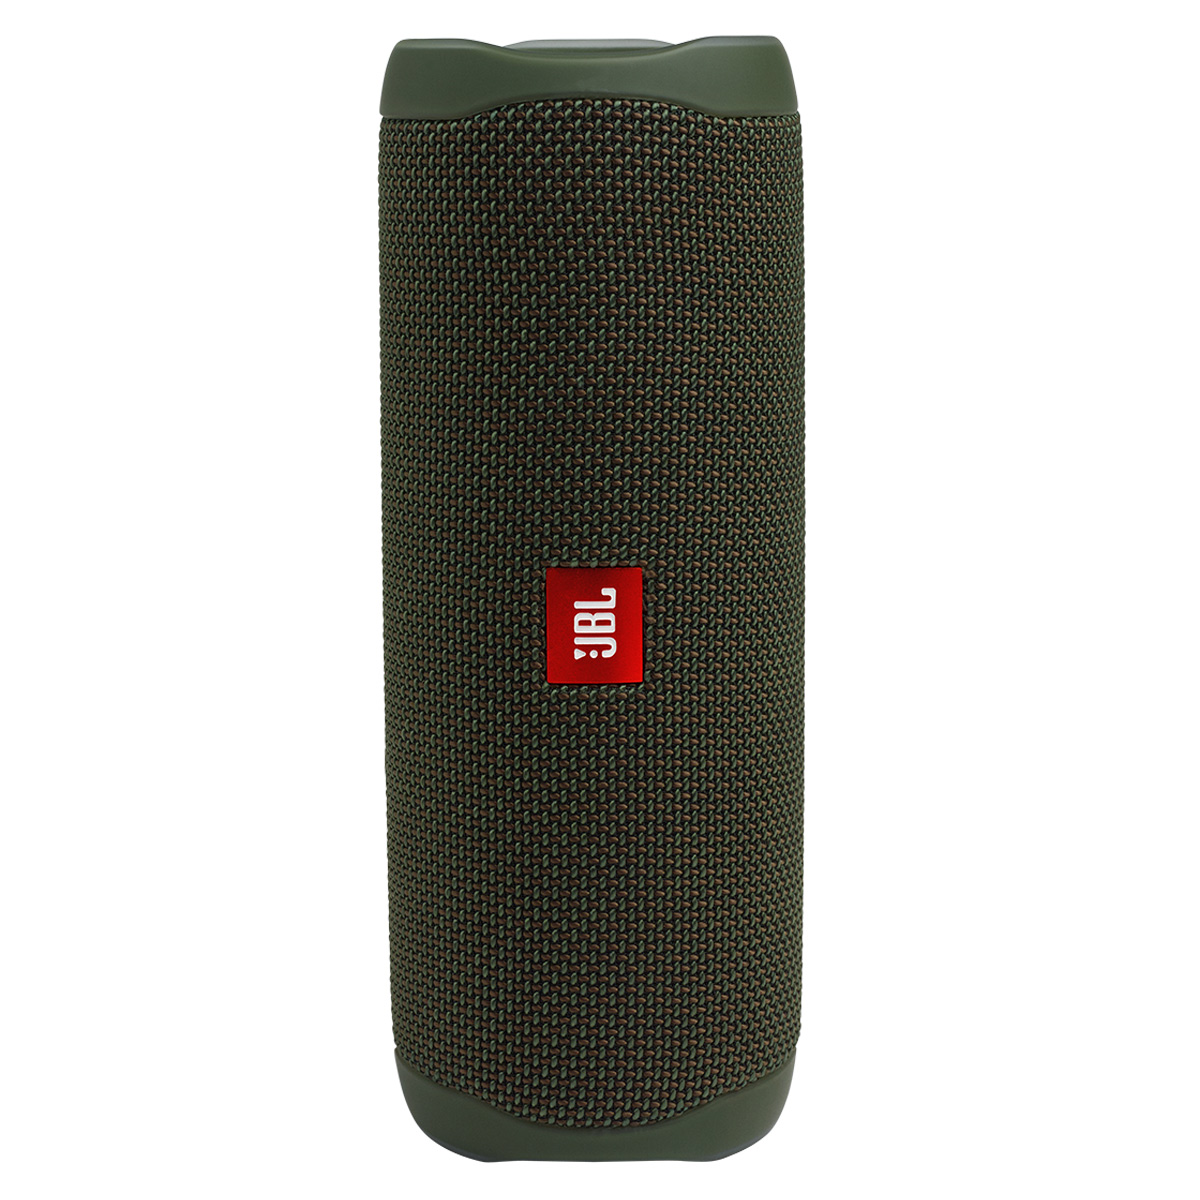 JBL-Flip-5-Portable-Waterproof-Bluetooth-Speaker thumbnail 22